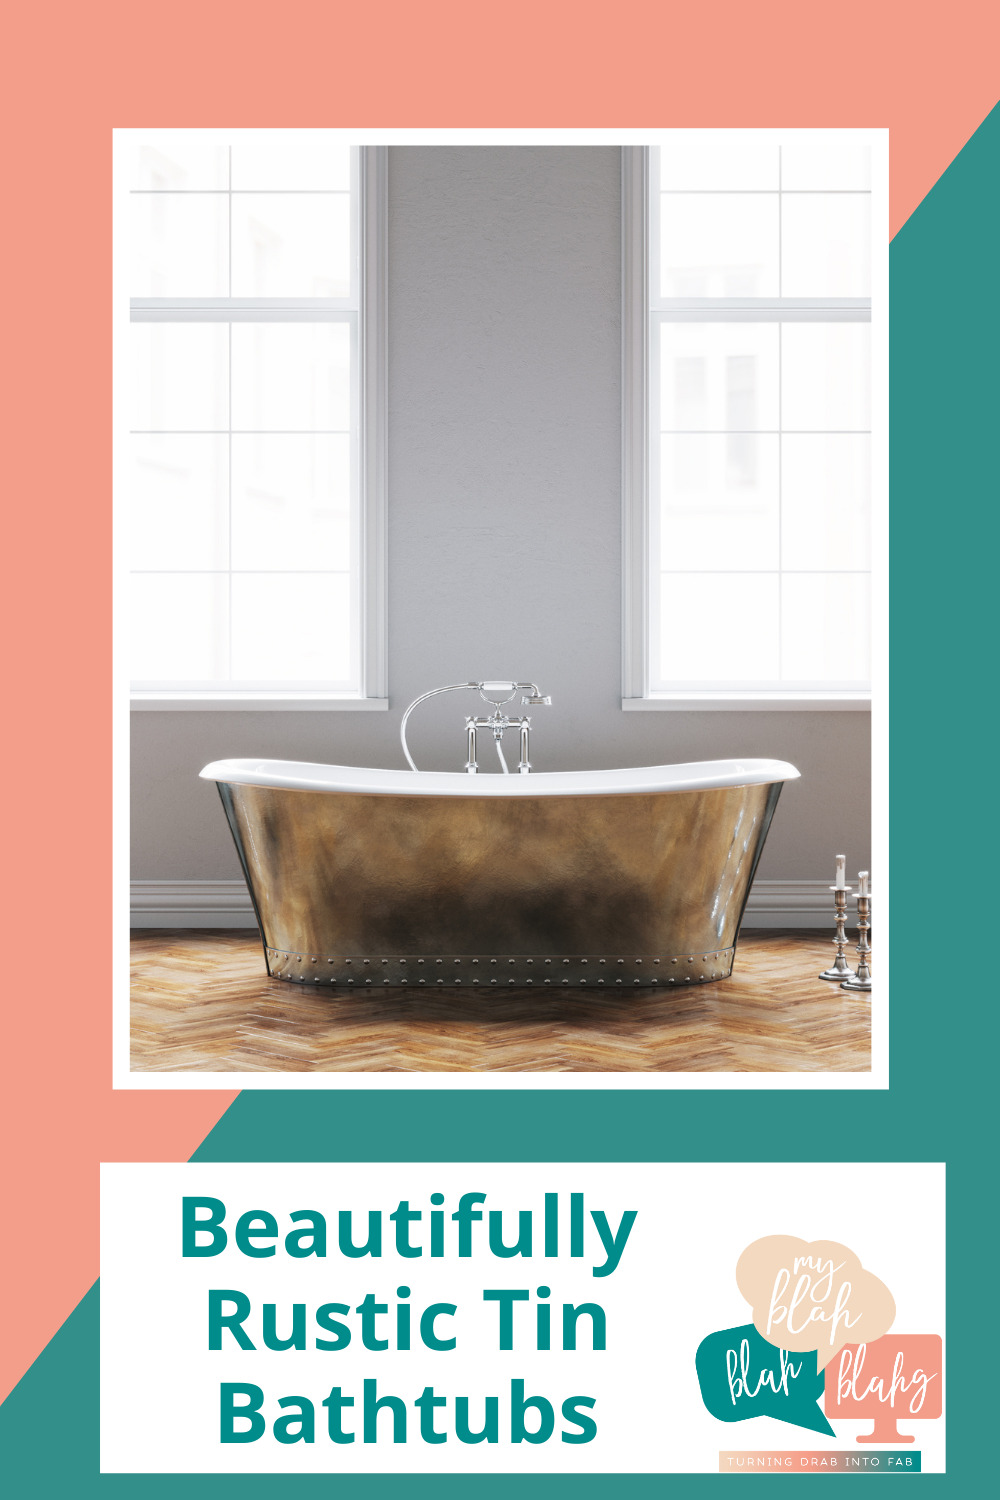 Myblahblahblahg.com has endless ideas for someone with any kind of taste! If you love the look of a modern farmhouse, bring that rustic charm into the bathroom, too! These tin bathtubs will be the perfect finishing touch!